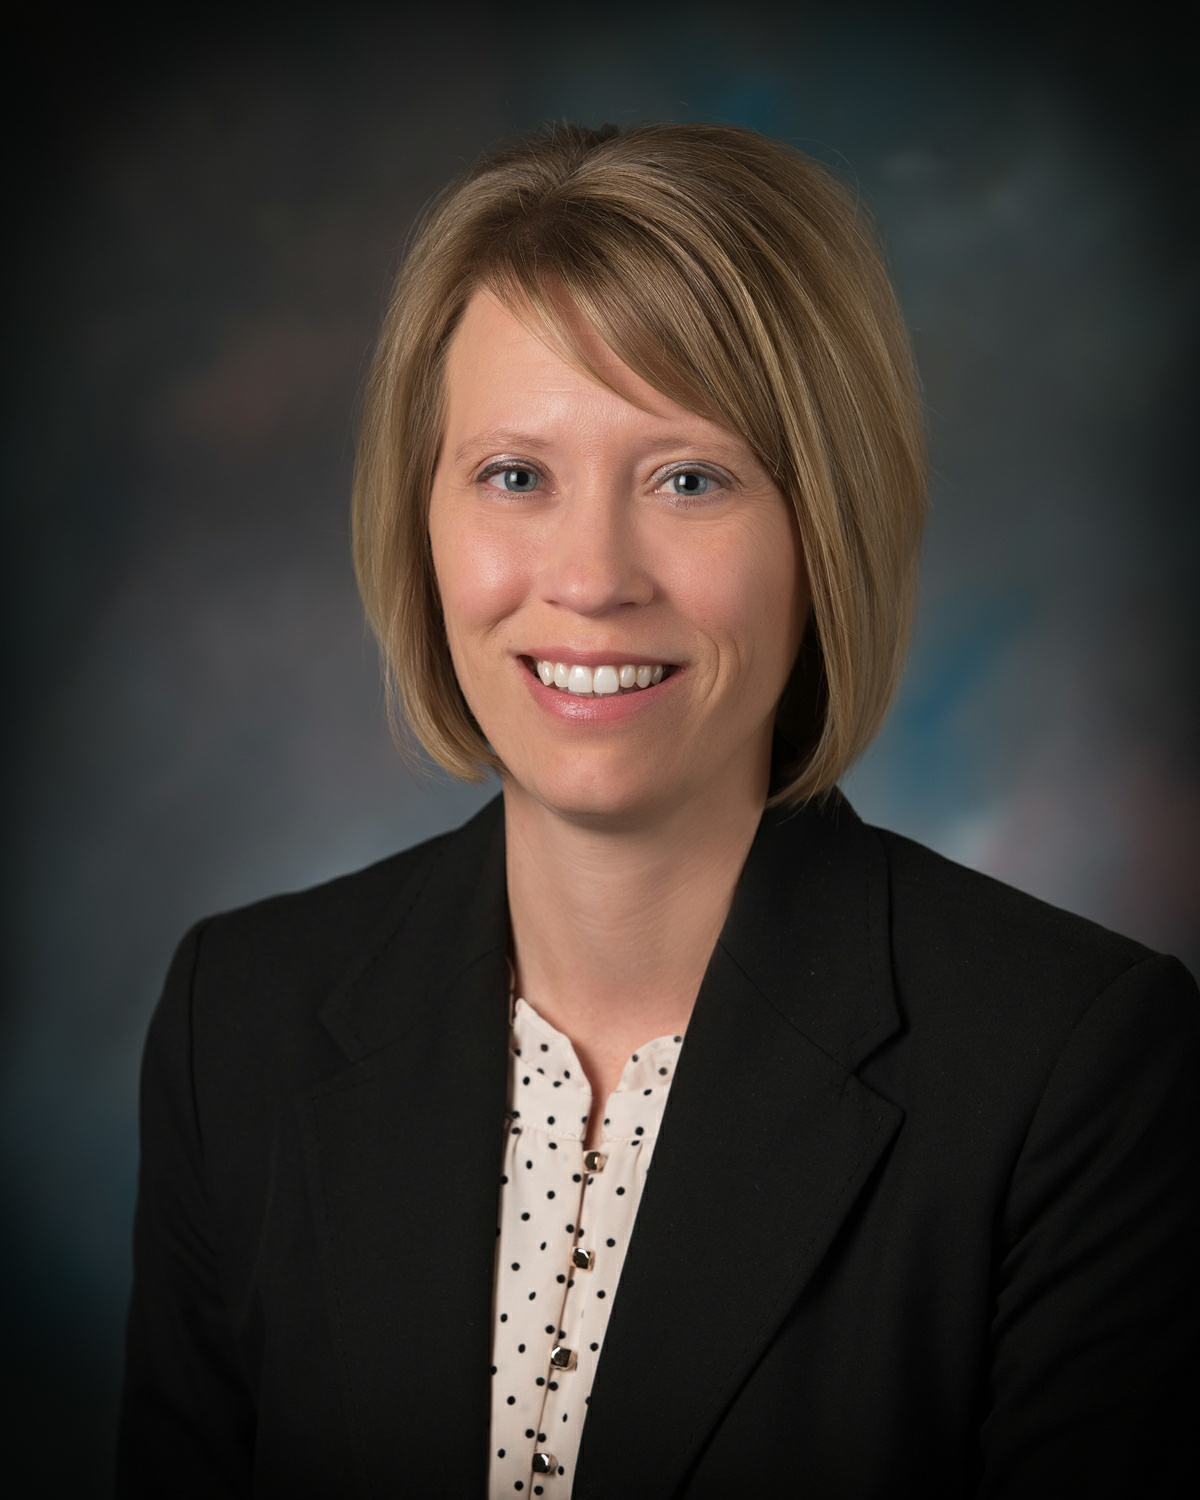 Ankeny Administrative Services Director Jennifer Sease